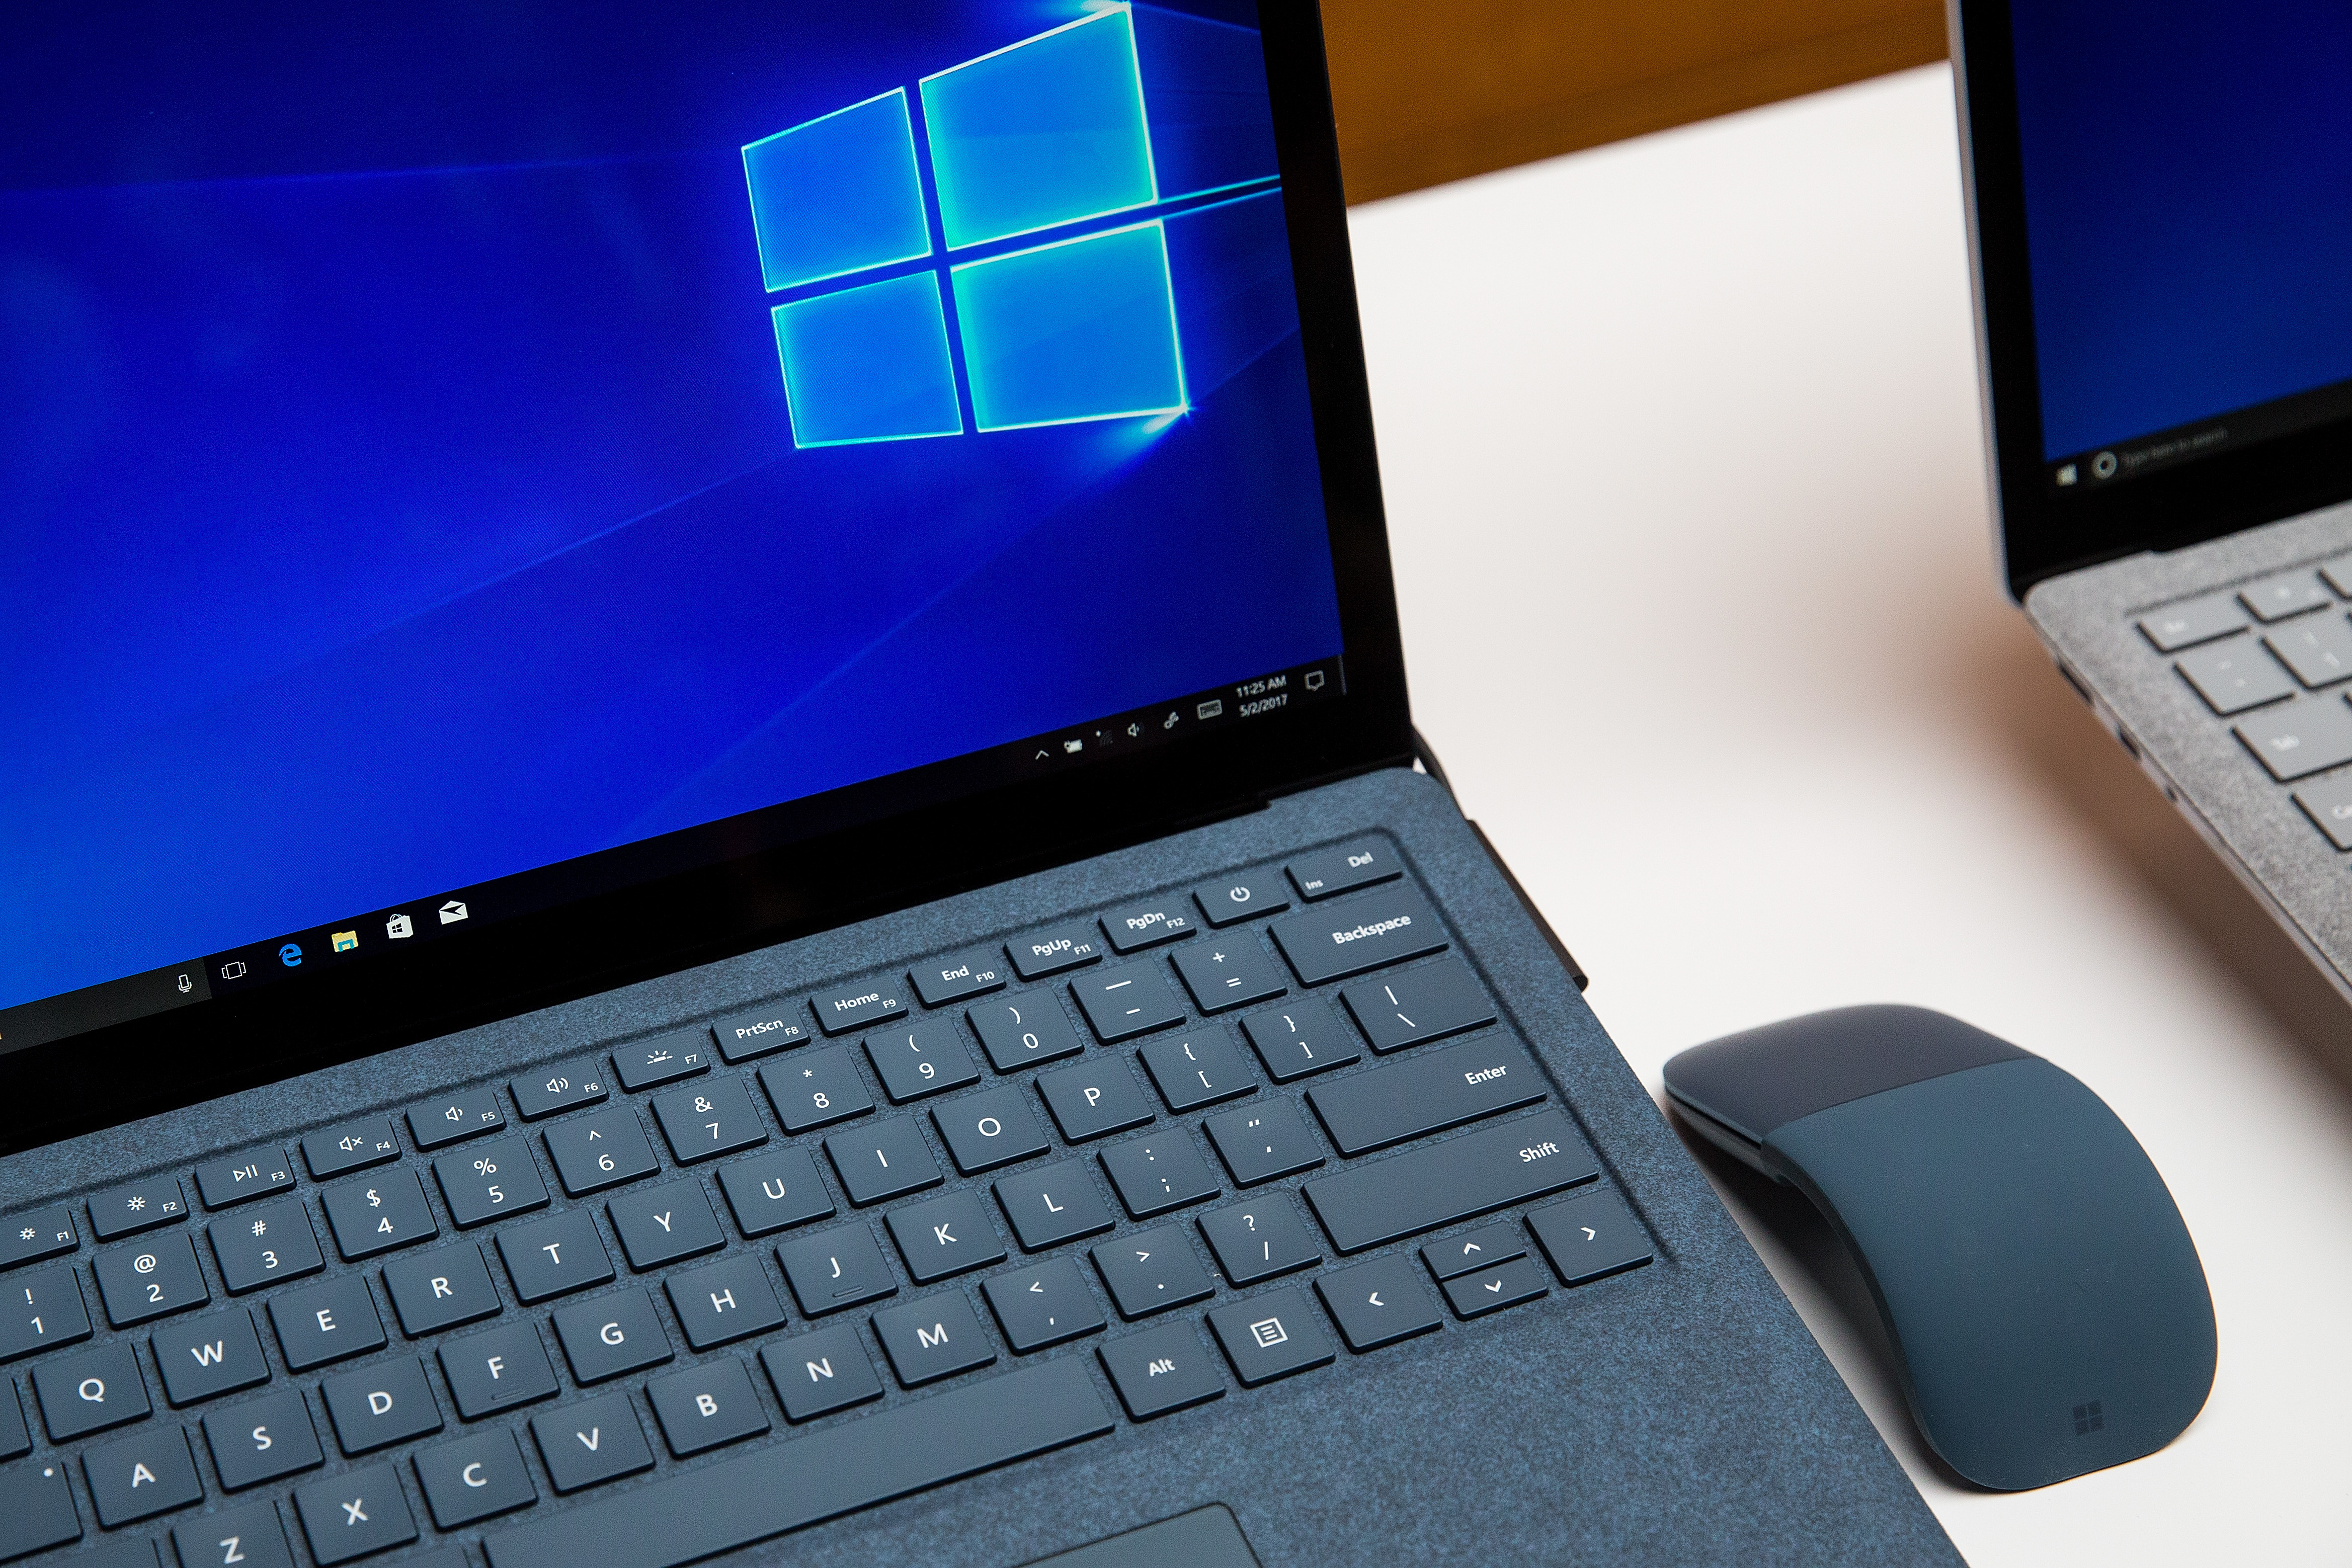 Windows 10 is installing Office web apps without asking permission